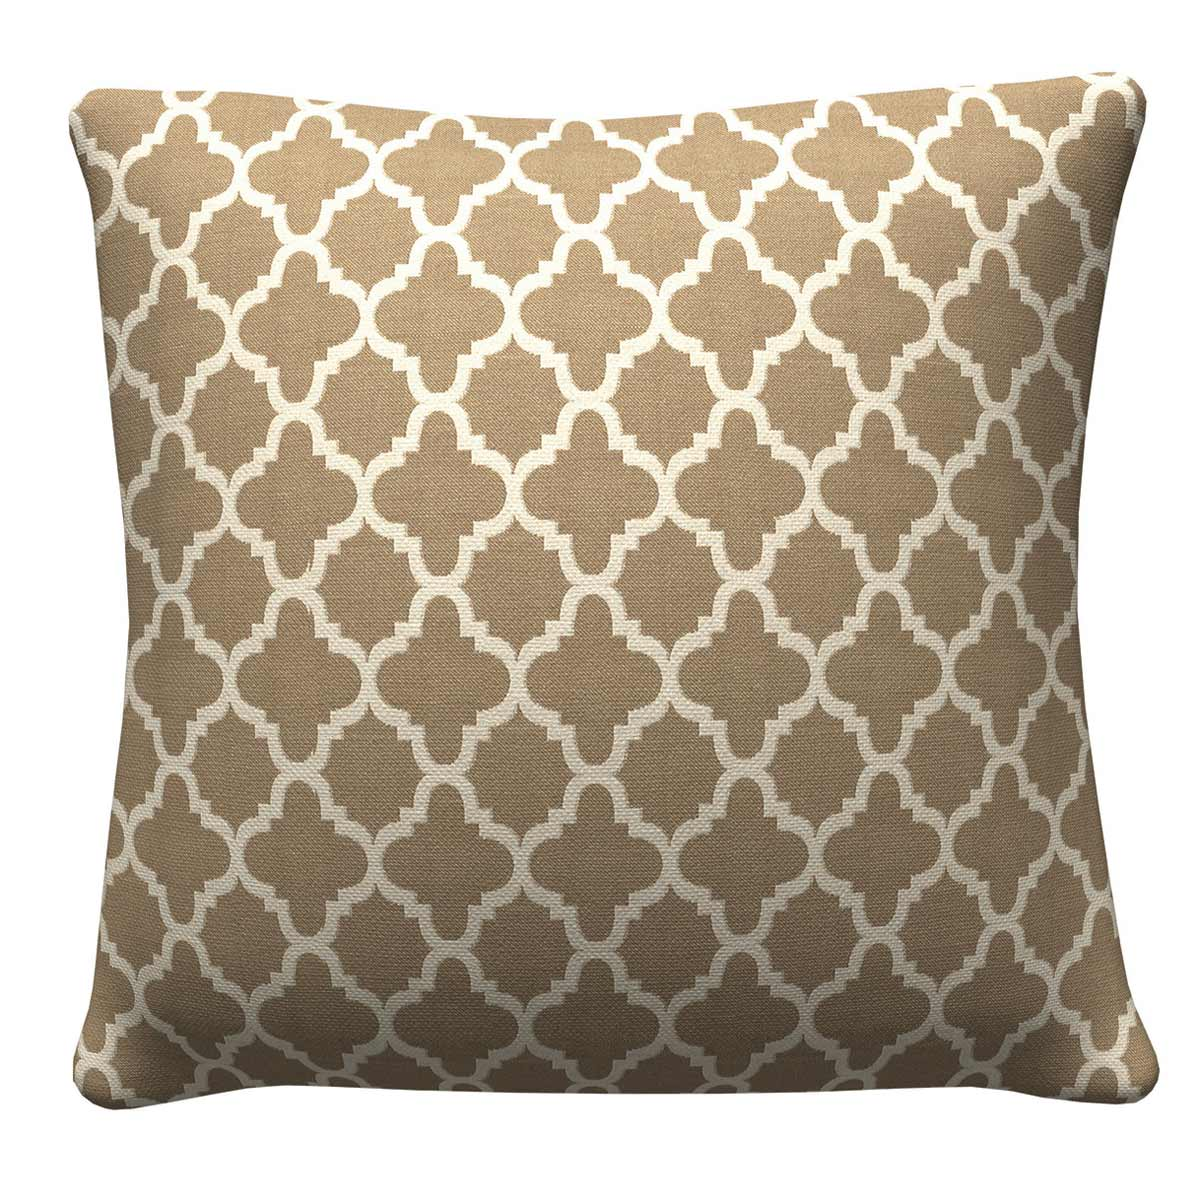 905313 Tan Quatrefoil Pillow